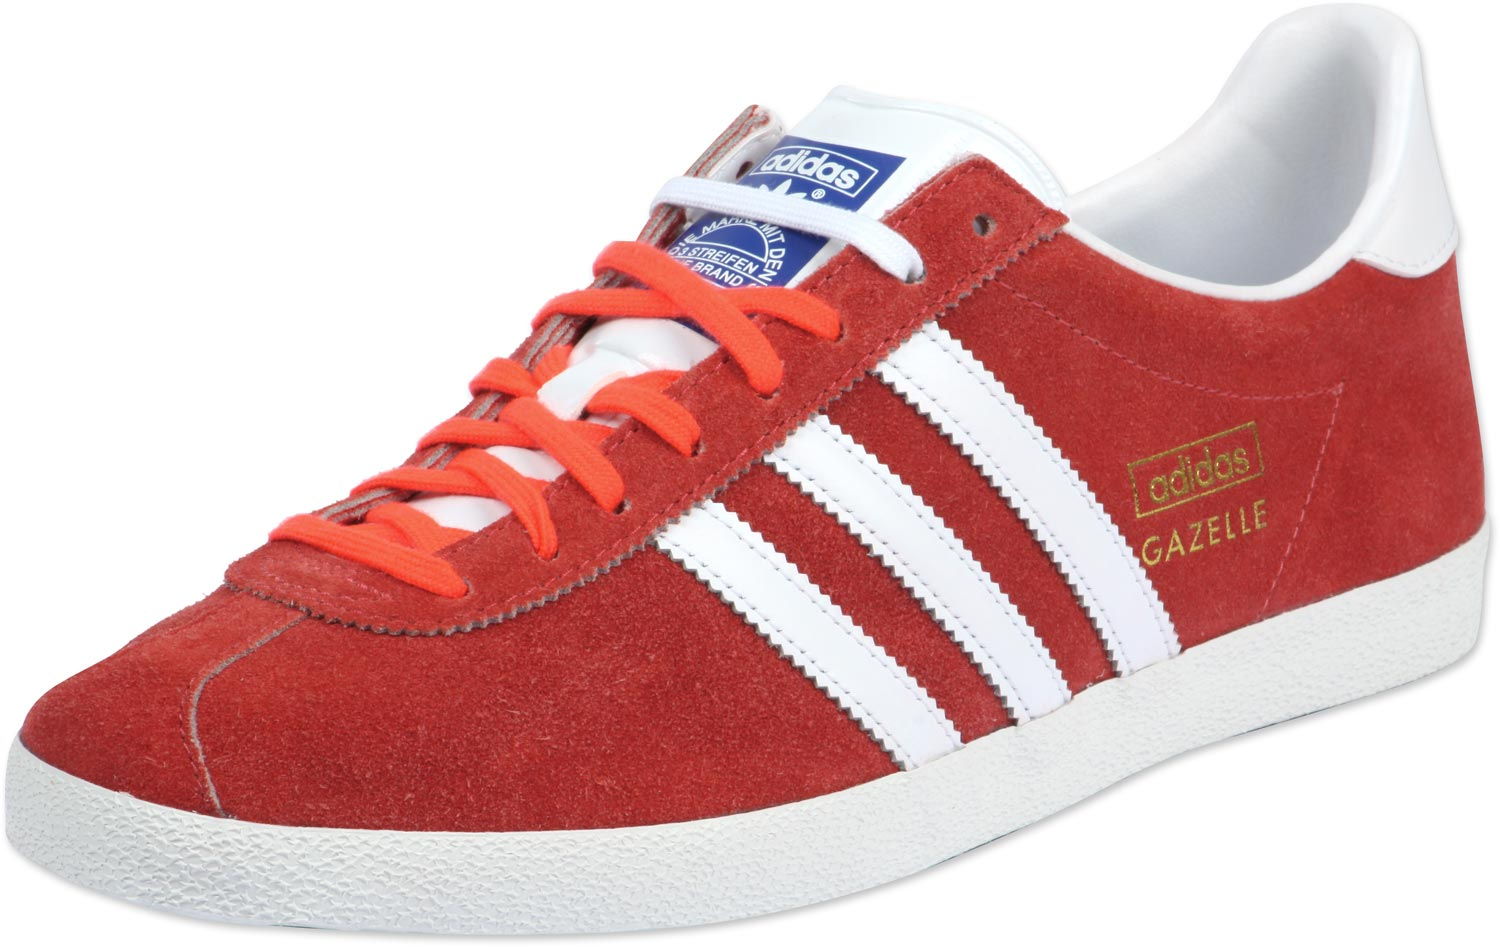 adidas originals gazelle soldes